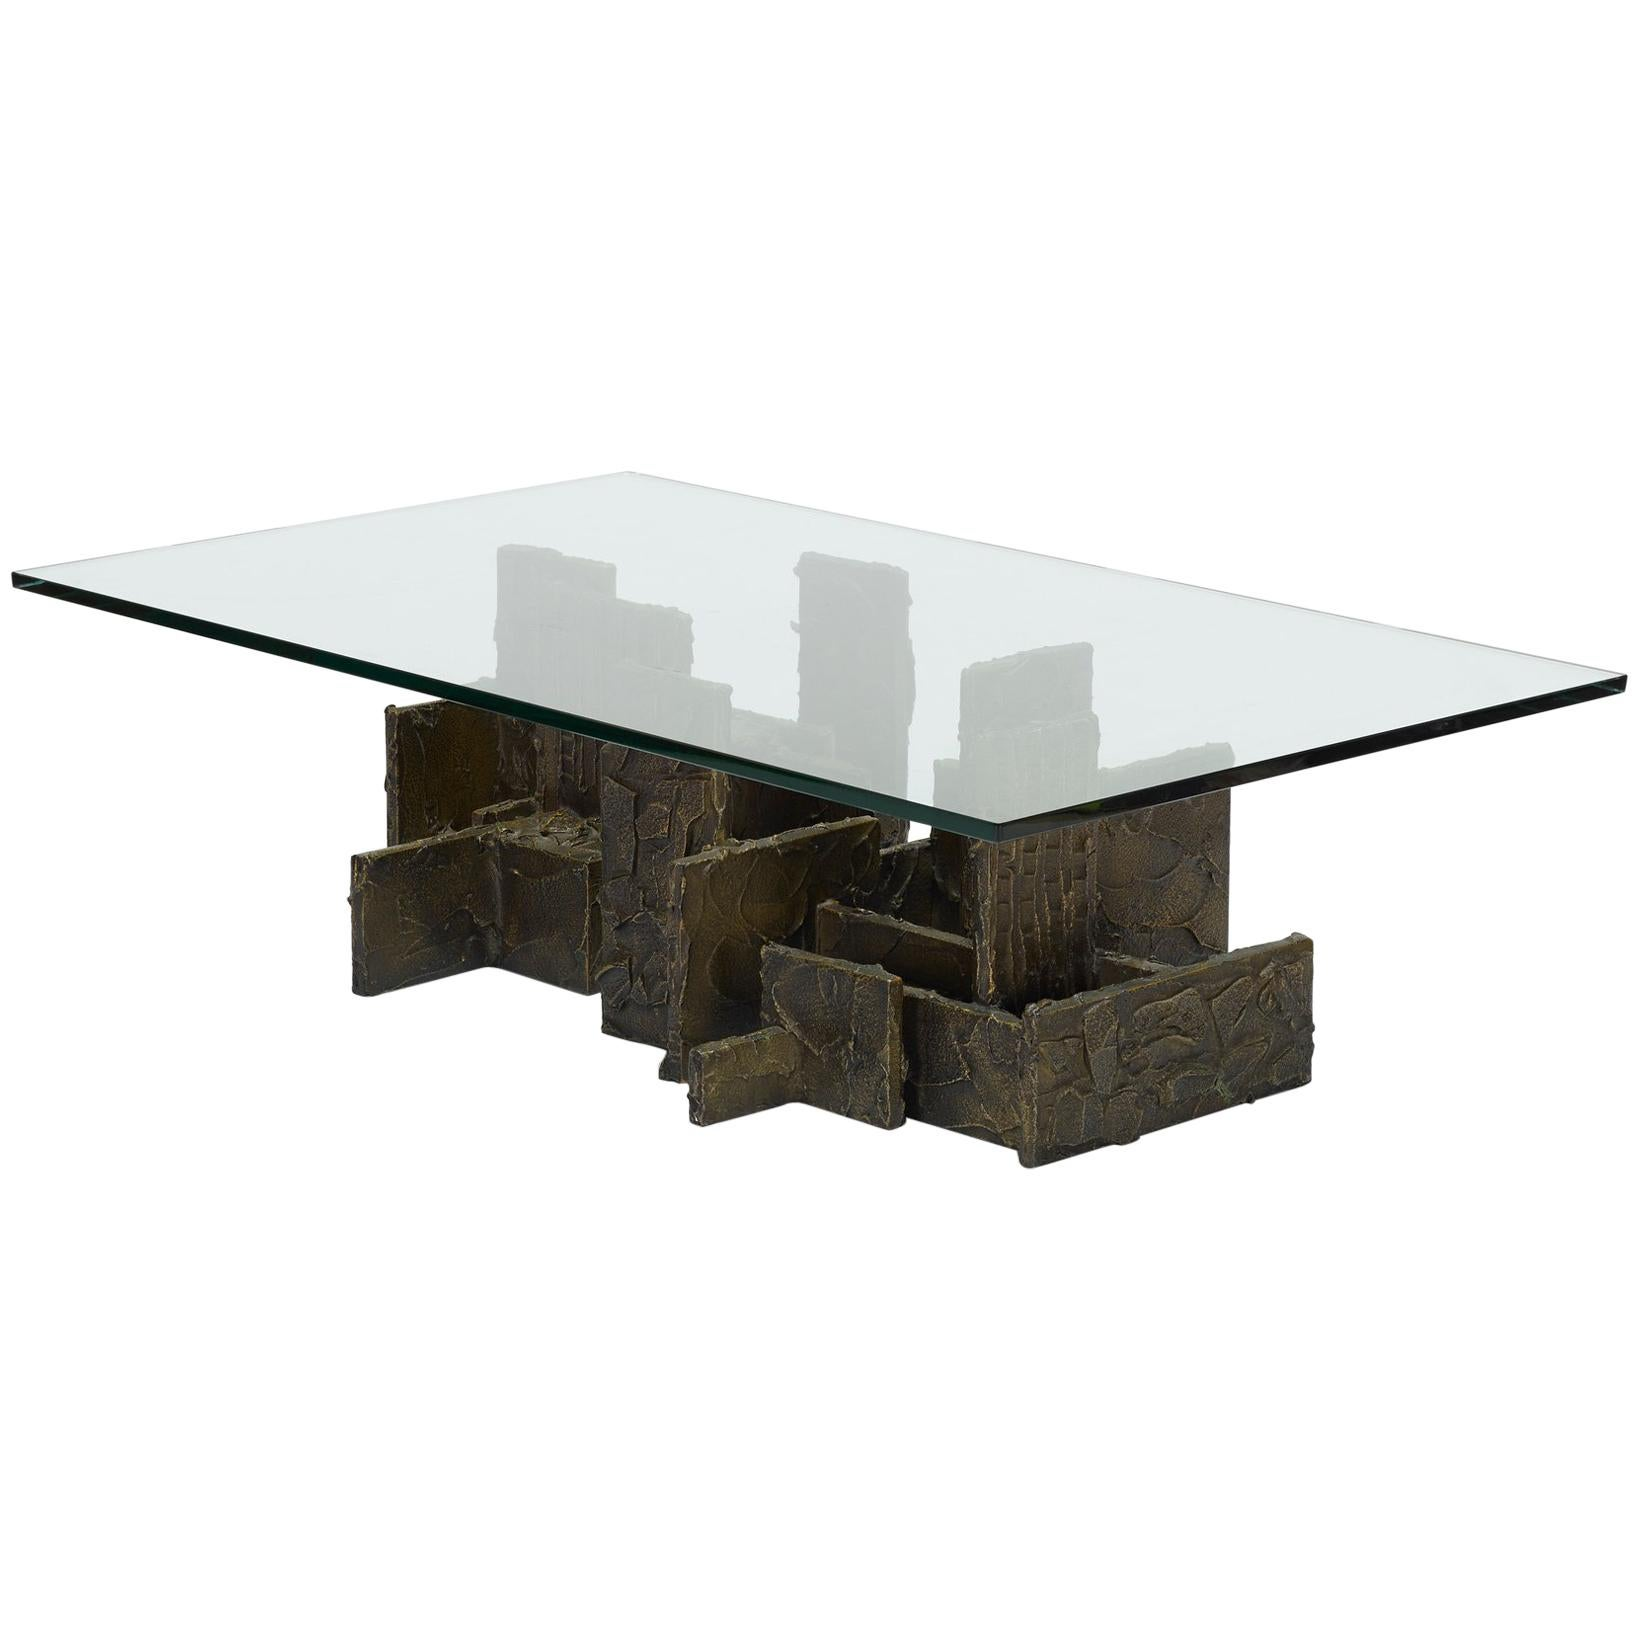 Brutalist Style Sculpted Bronze Coffee Table by Paul Evans